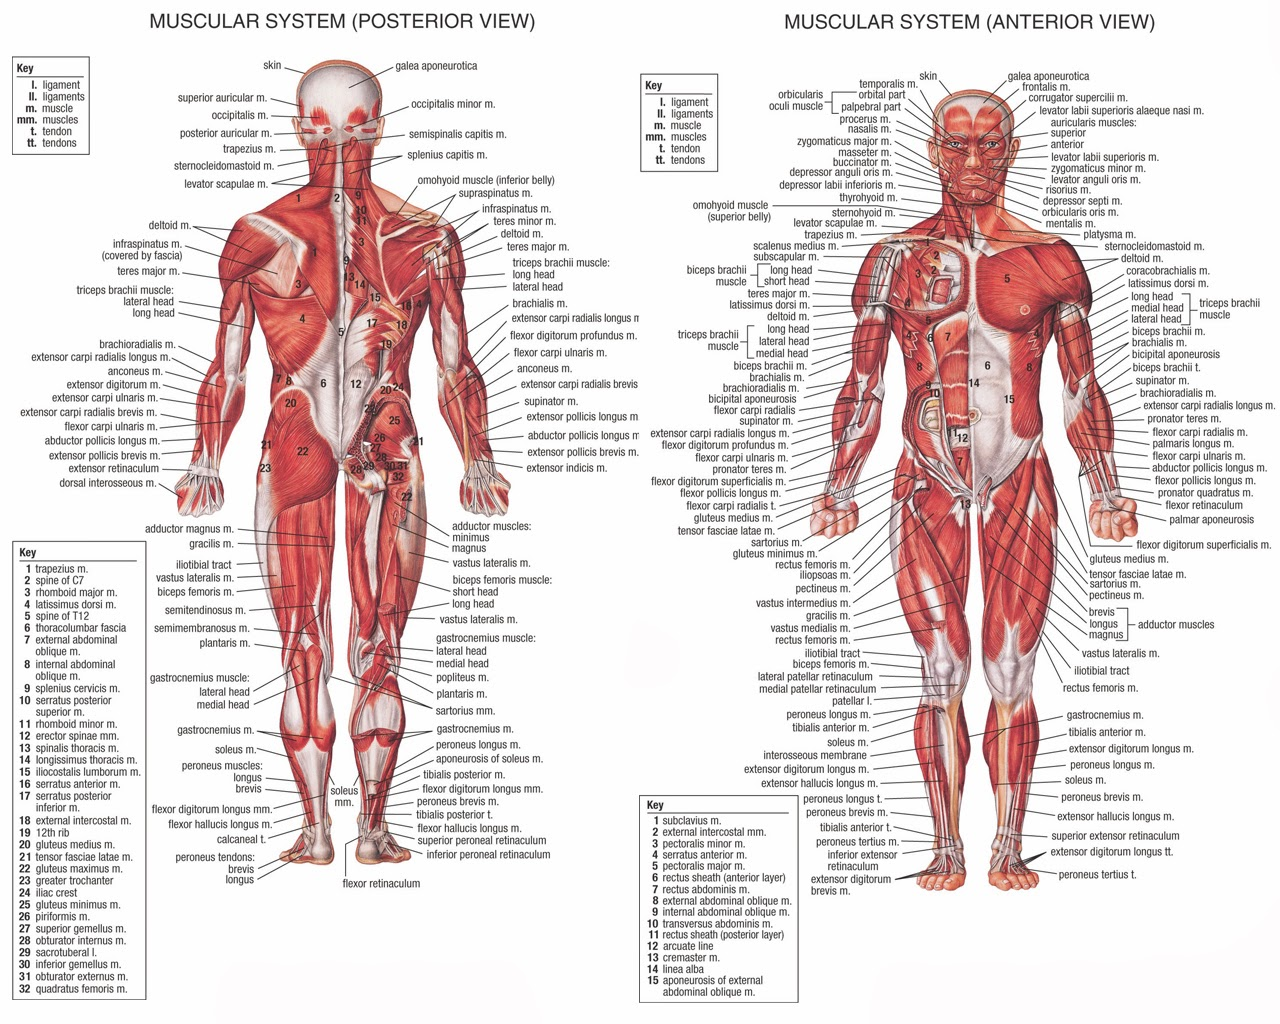 Human body muscle anatomy